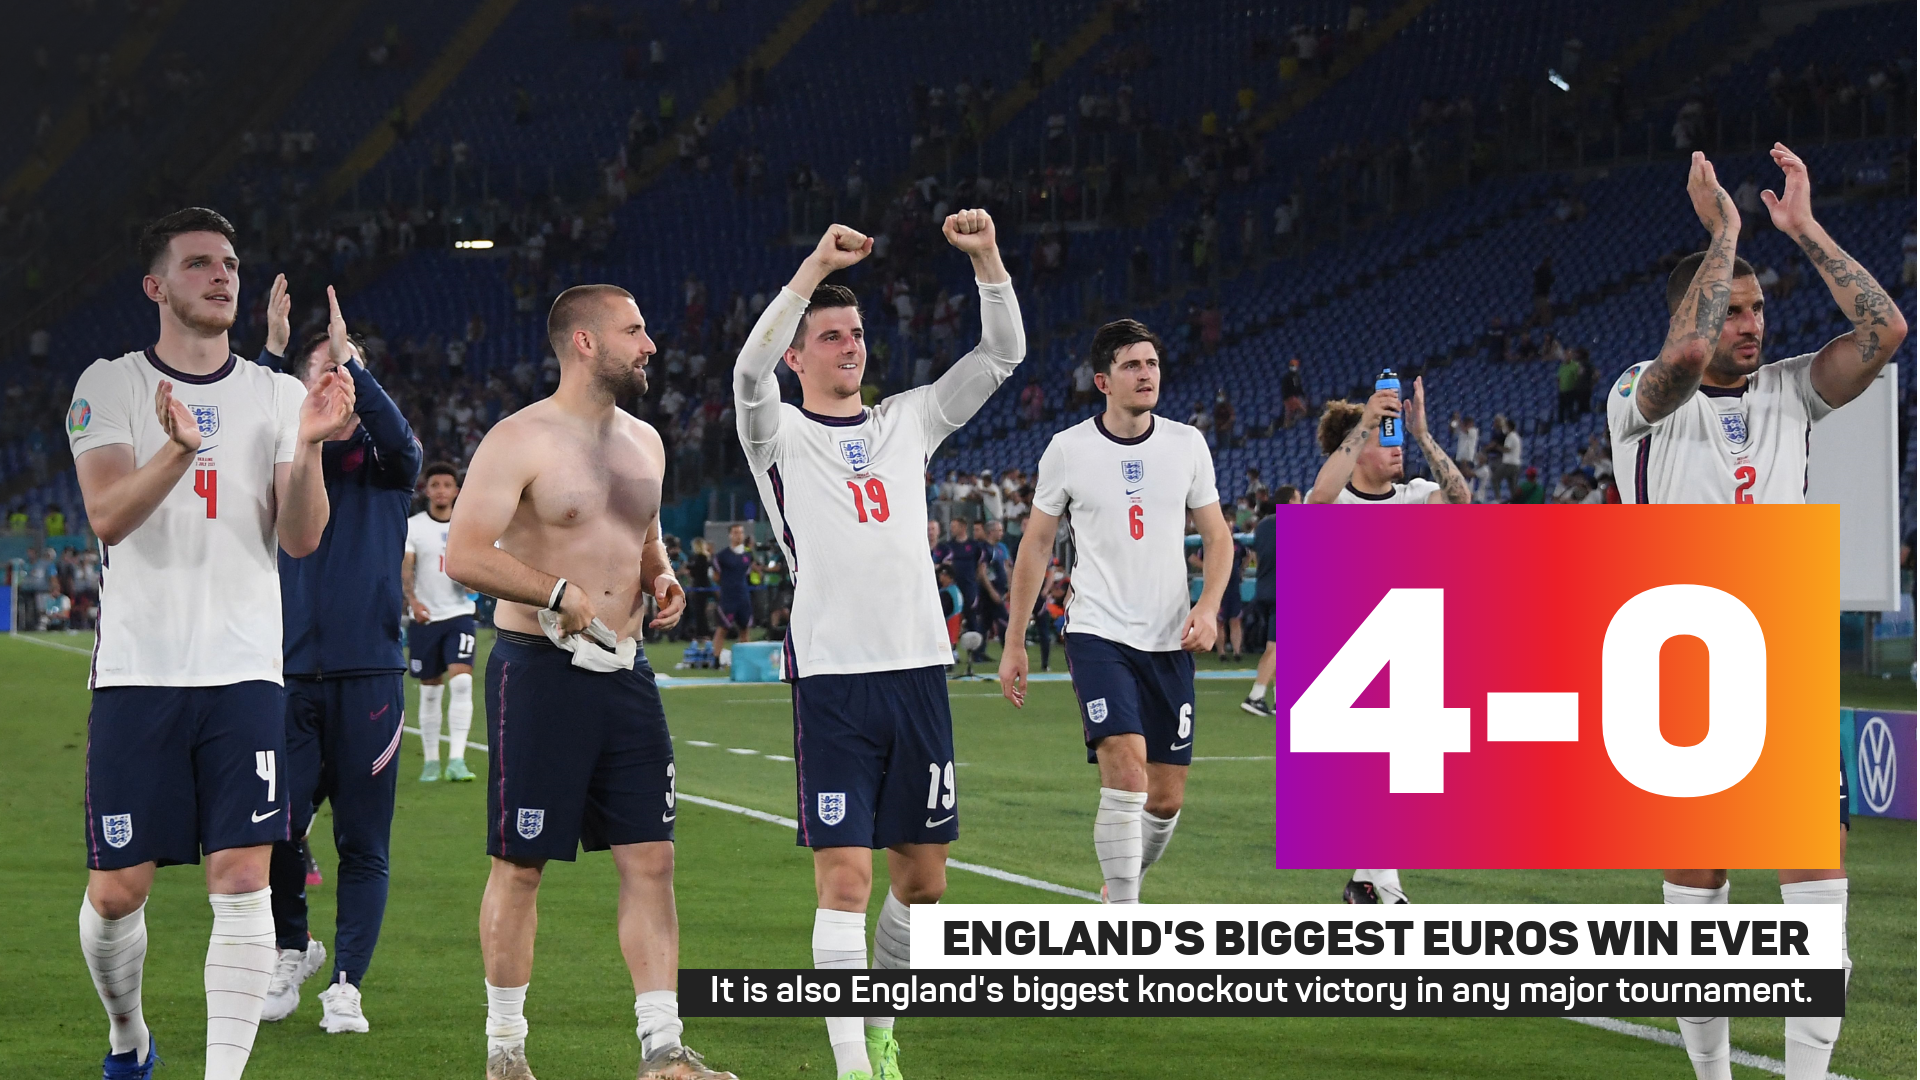 England recorded their biggest ever Euros win against Ukraine